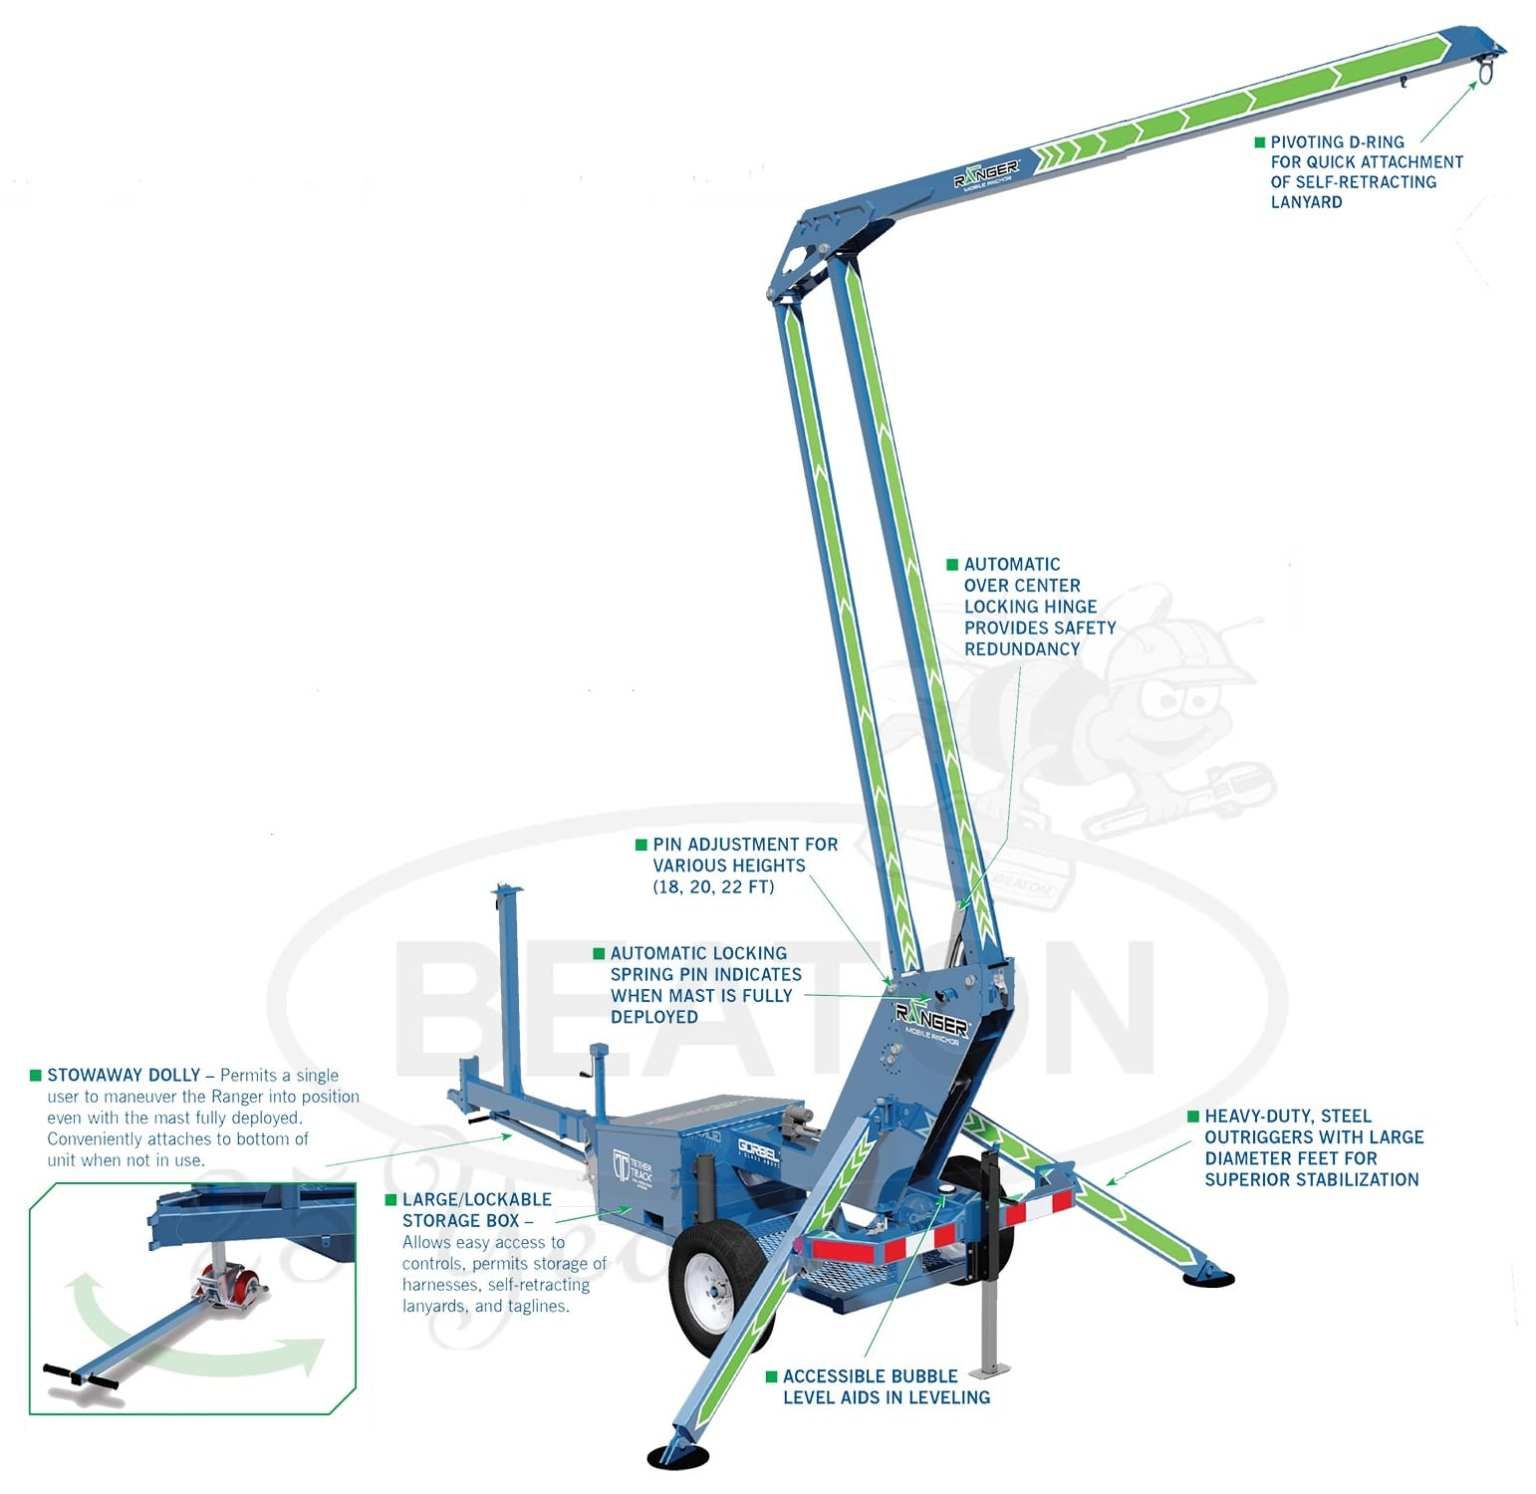 Ranger Mobile Anchor Fall Arrest Protection